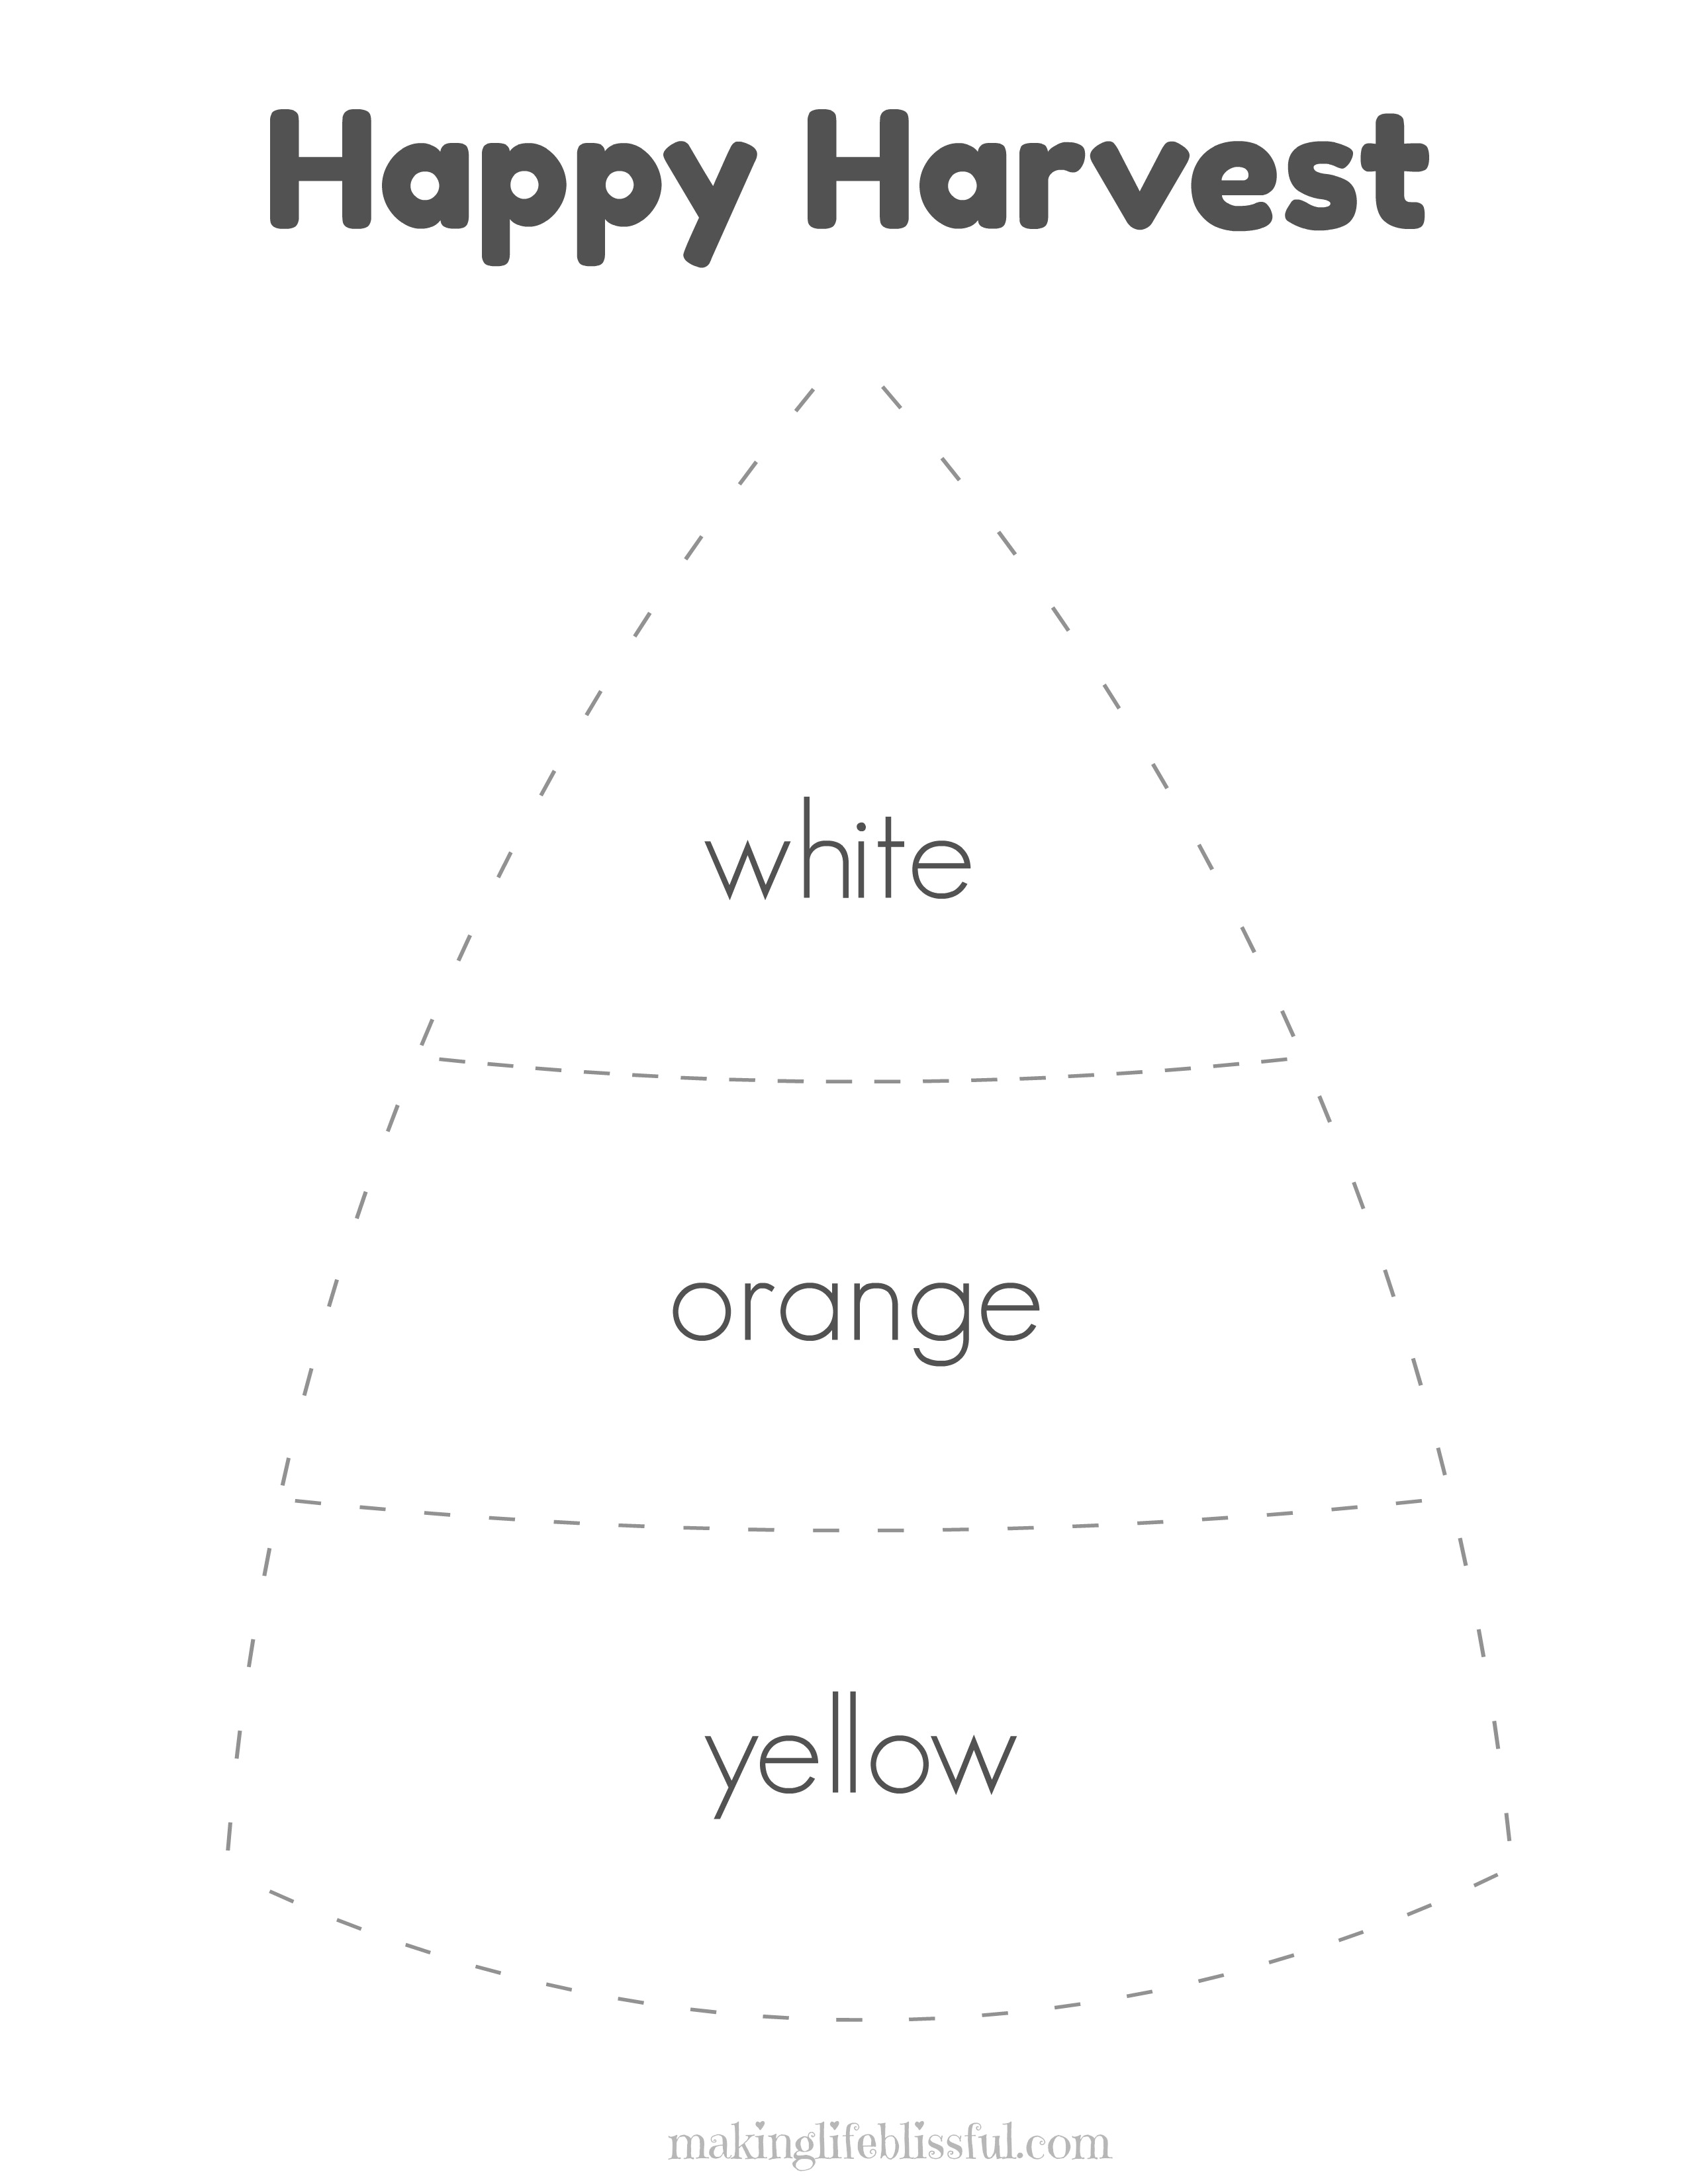 Candy Corn Craft For Kids And Printables